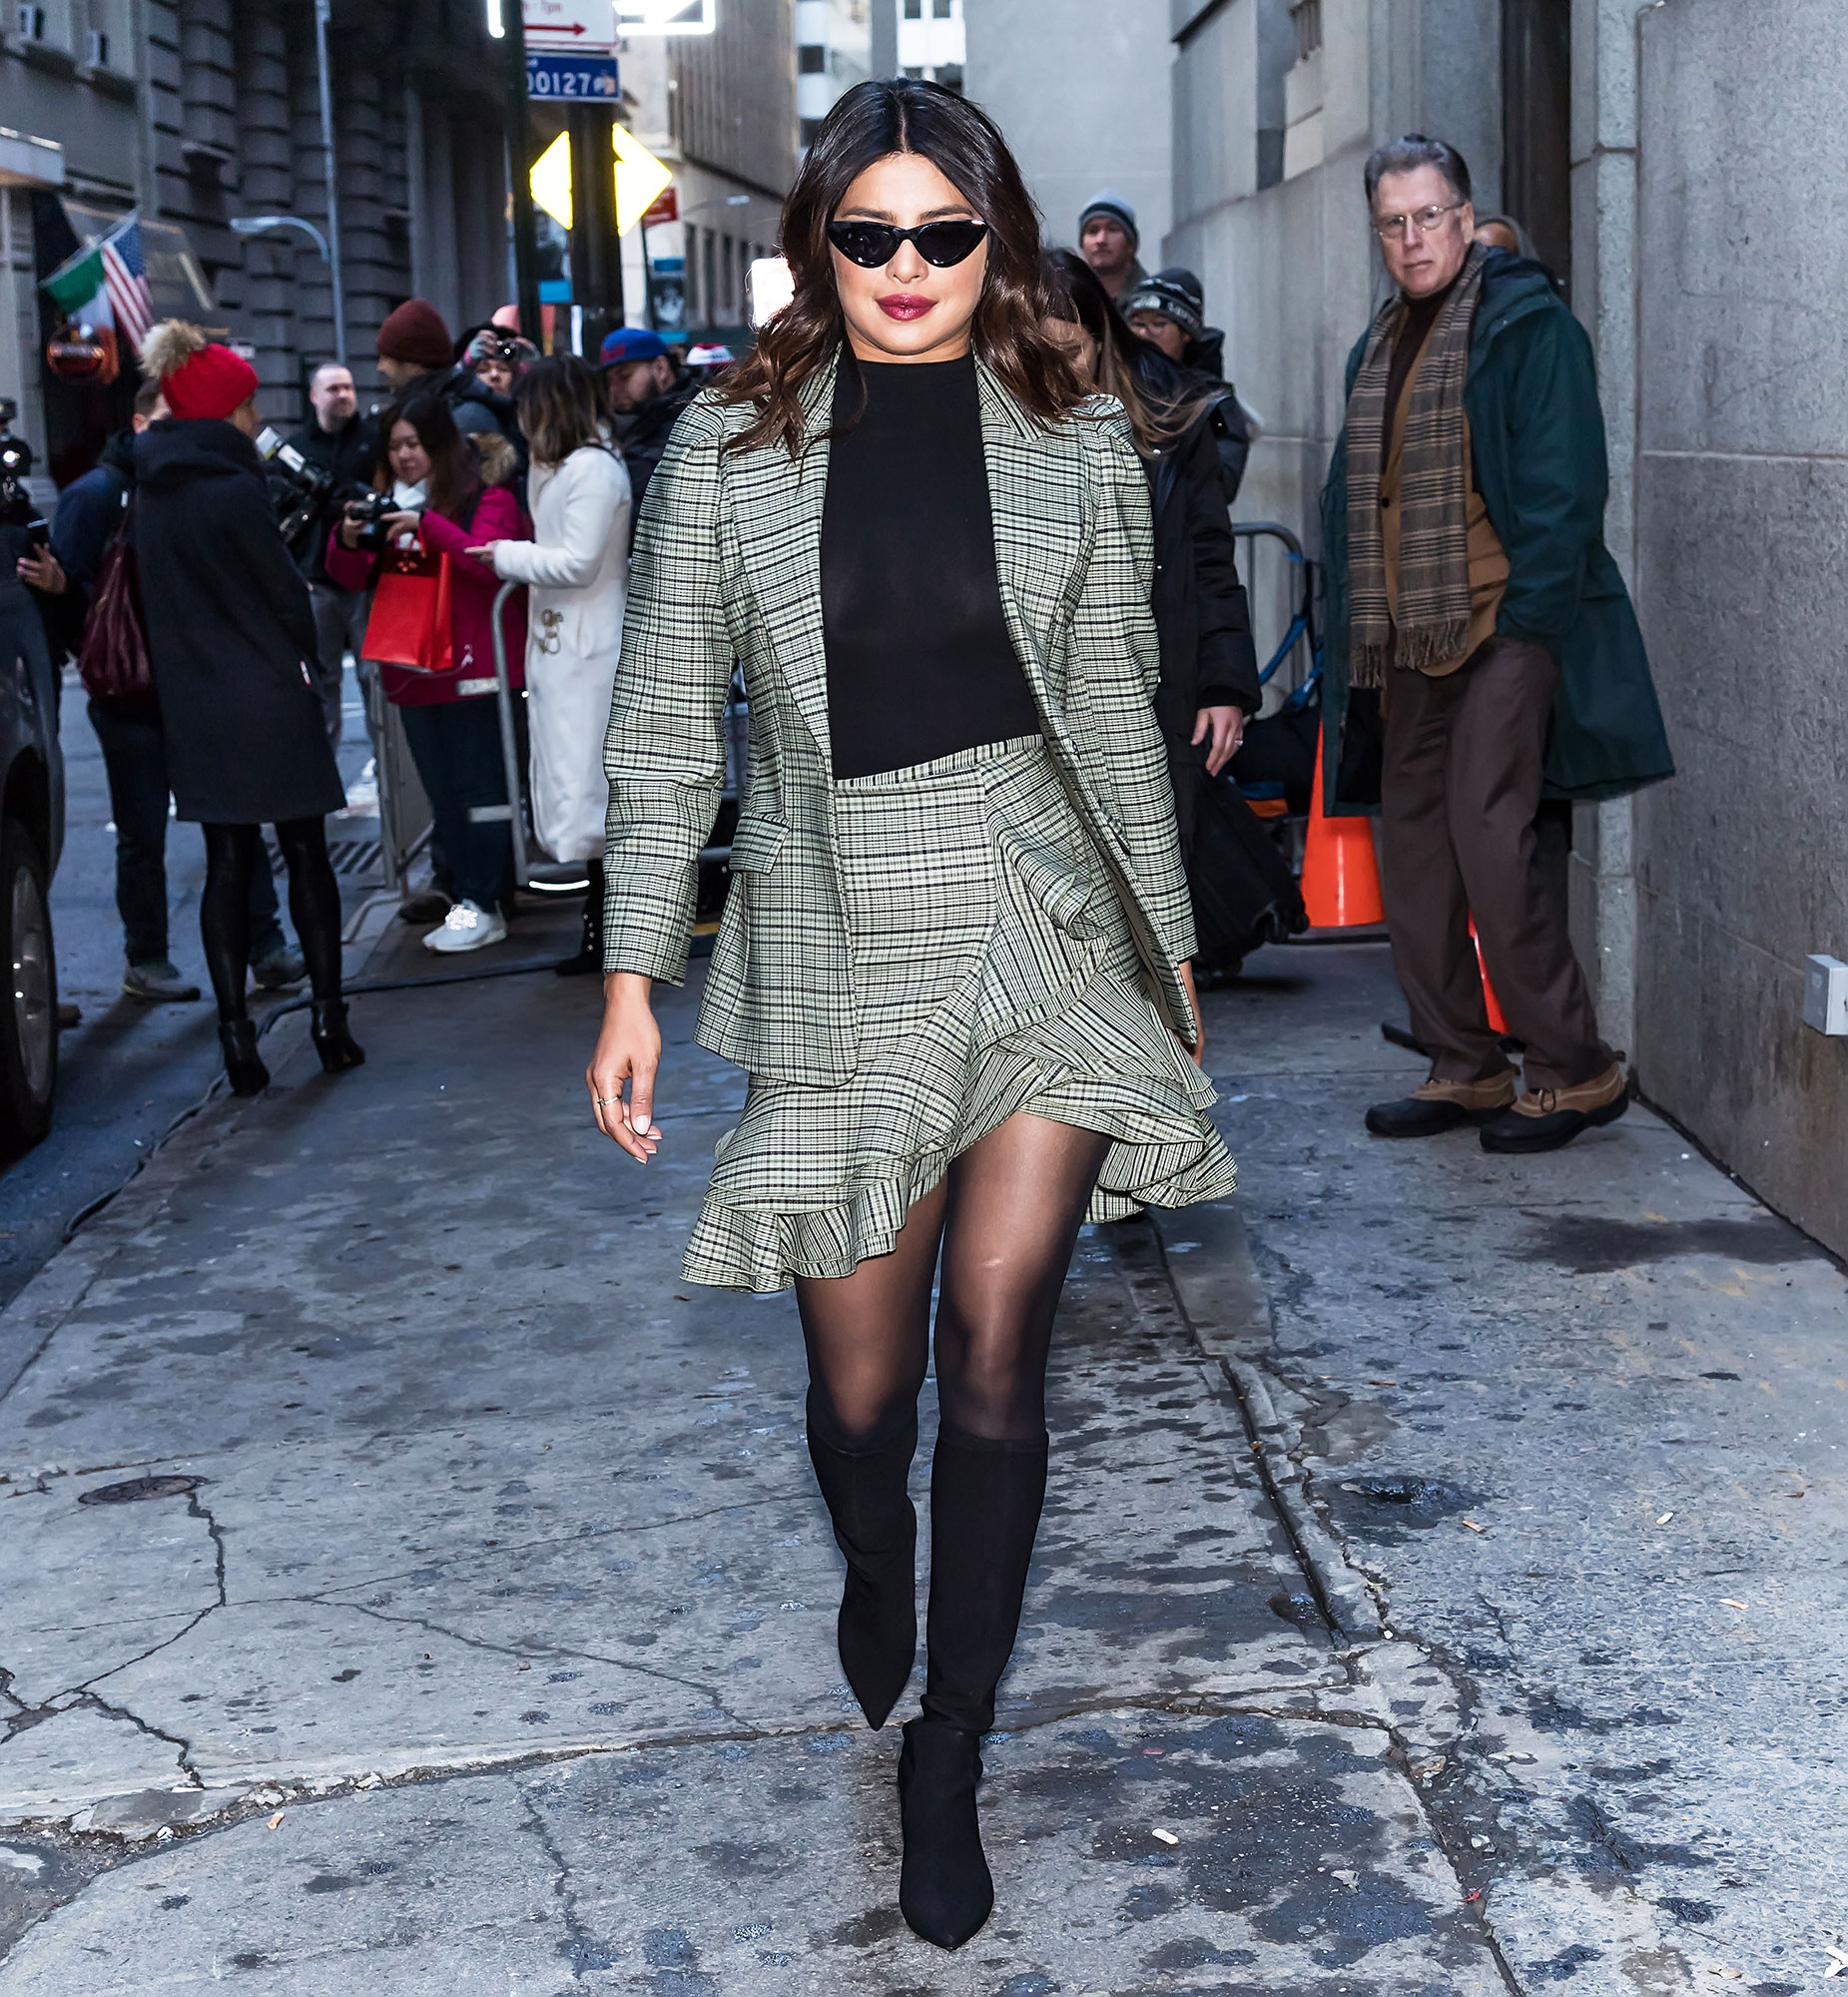 nyfw new york fashion week Priyanka Chopra Jonas - Spotted outside the Michael Kors show on February 13, the newlywed rocked a business-chic matching pinstriped skirt and suit jacket with sheer tights and skinny shades.